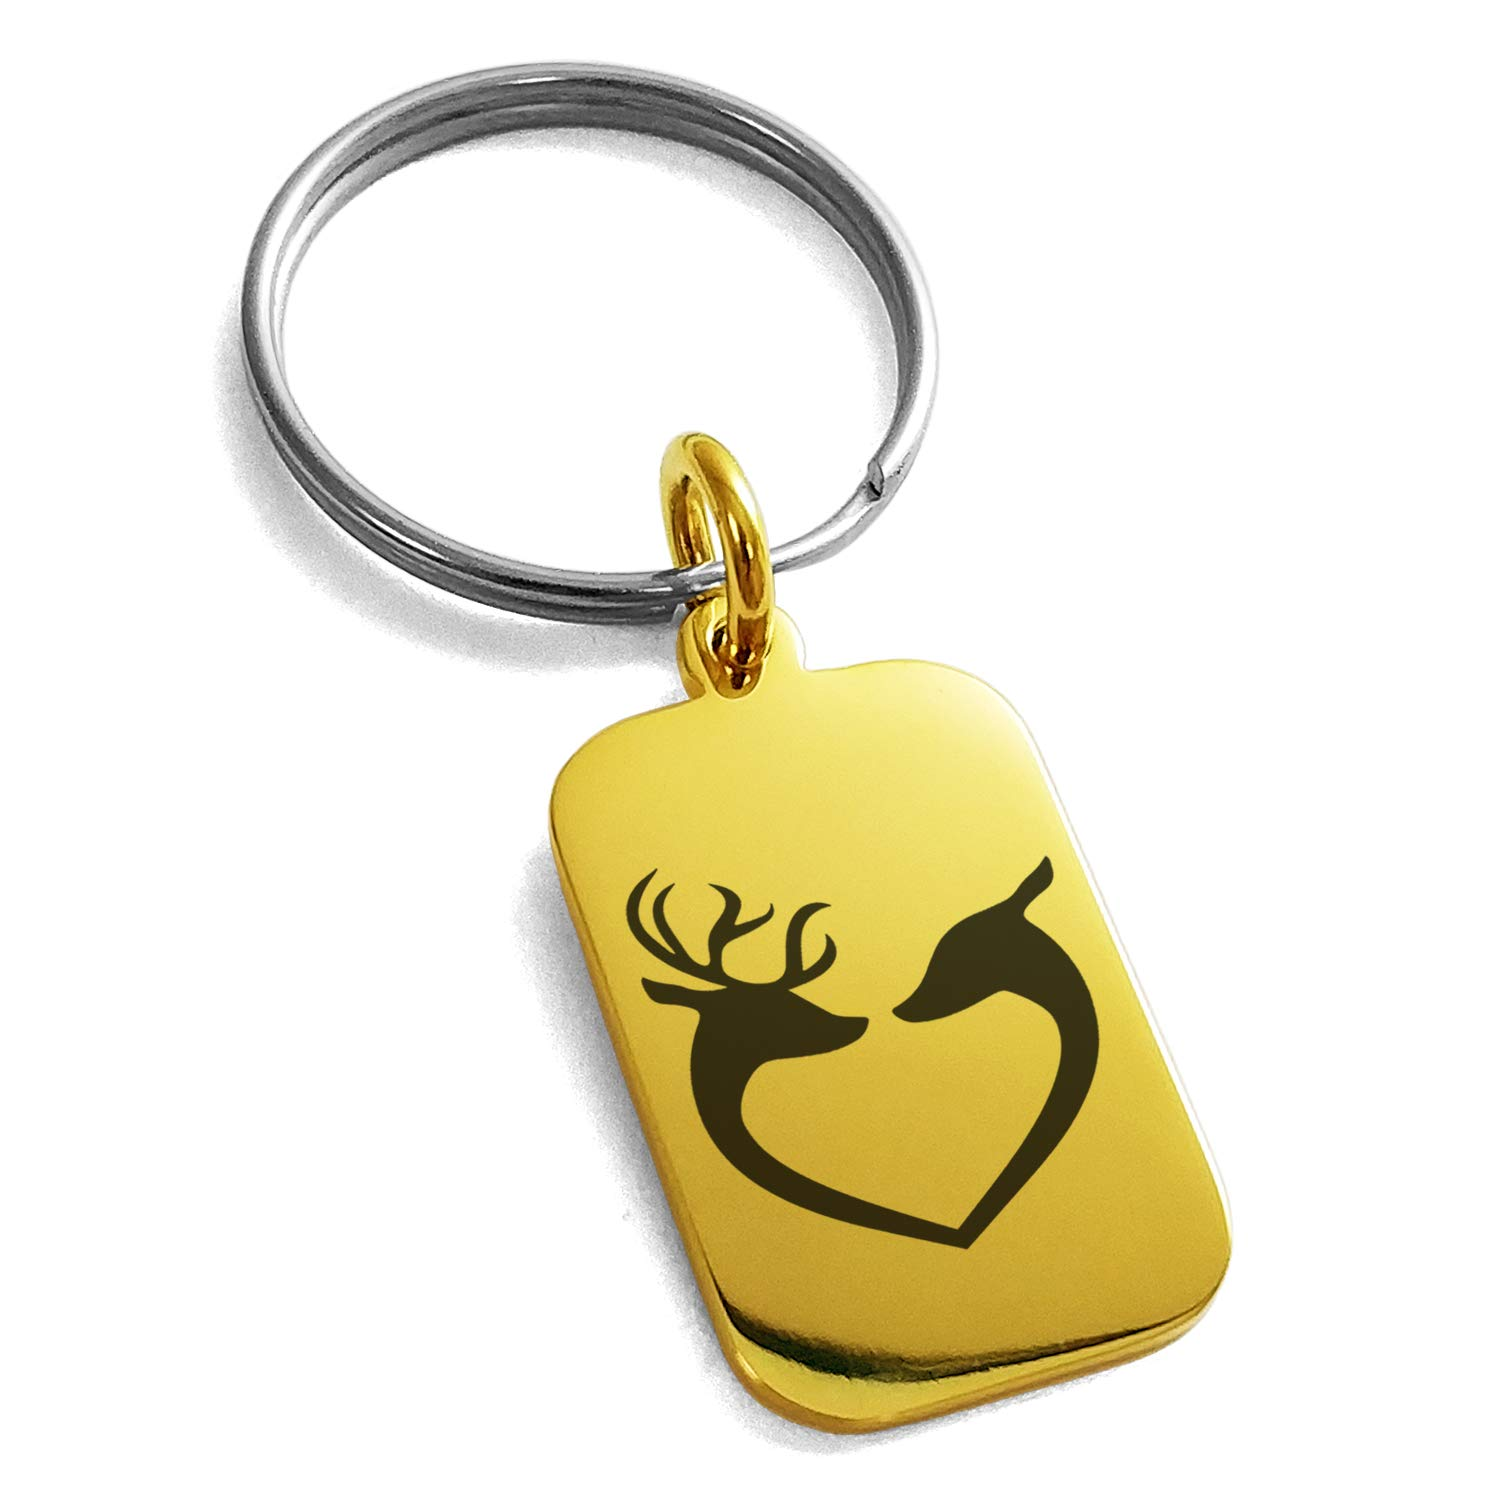 Rose Gold Stainless Steel Reindeer Heart Love Engraved Small Rectangle Dog Tag Charm Keychain Keyring